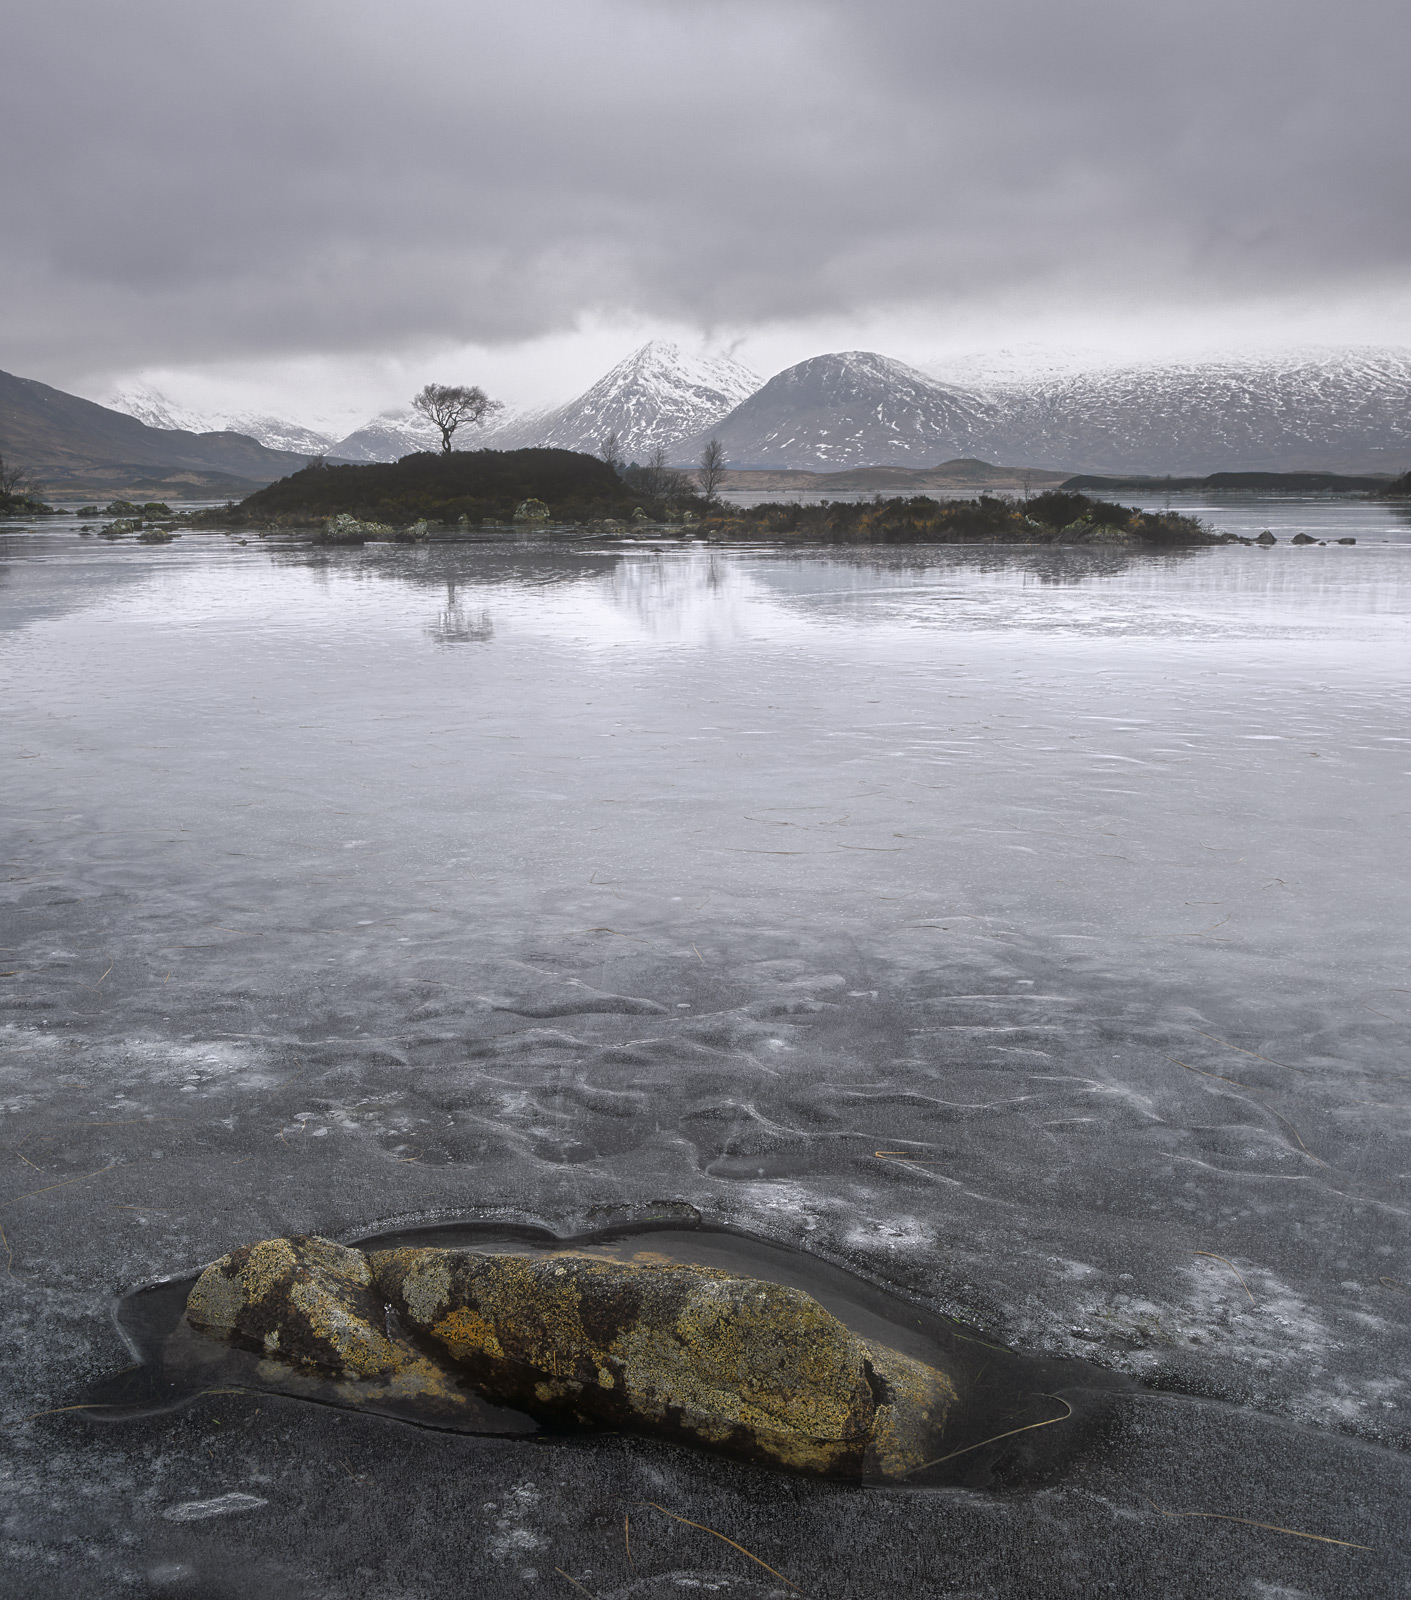 On a dead pan grey windless winter day I assisted another photographer with shots around Rannoch moor. On the face of it...